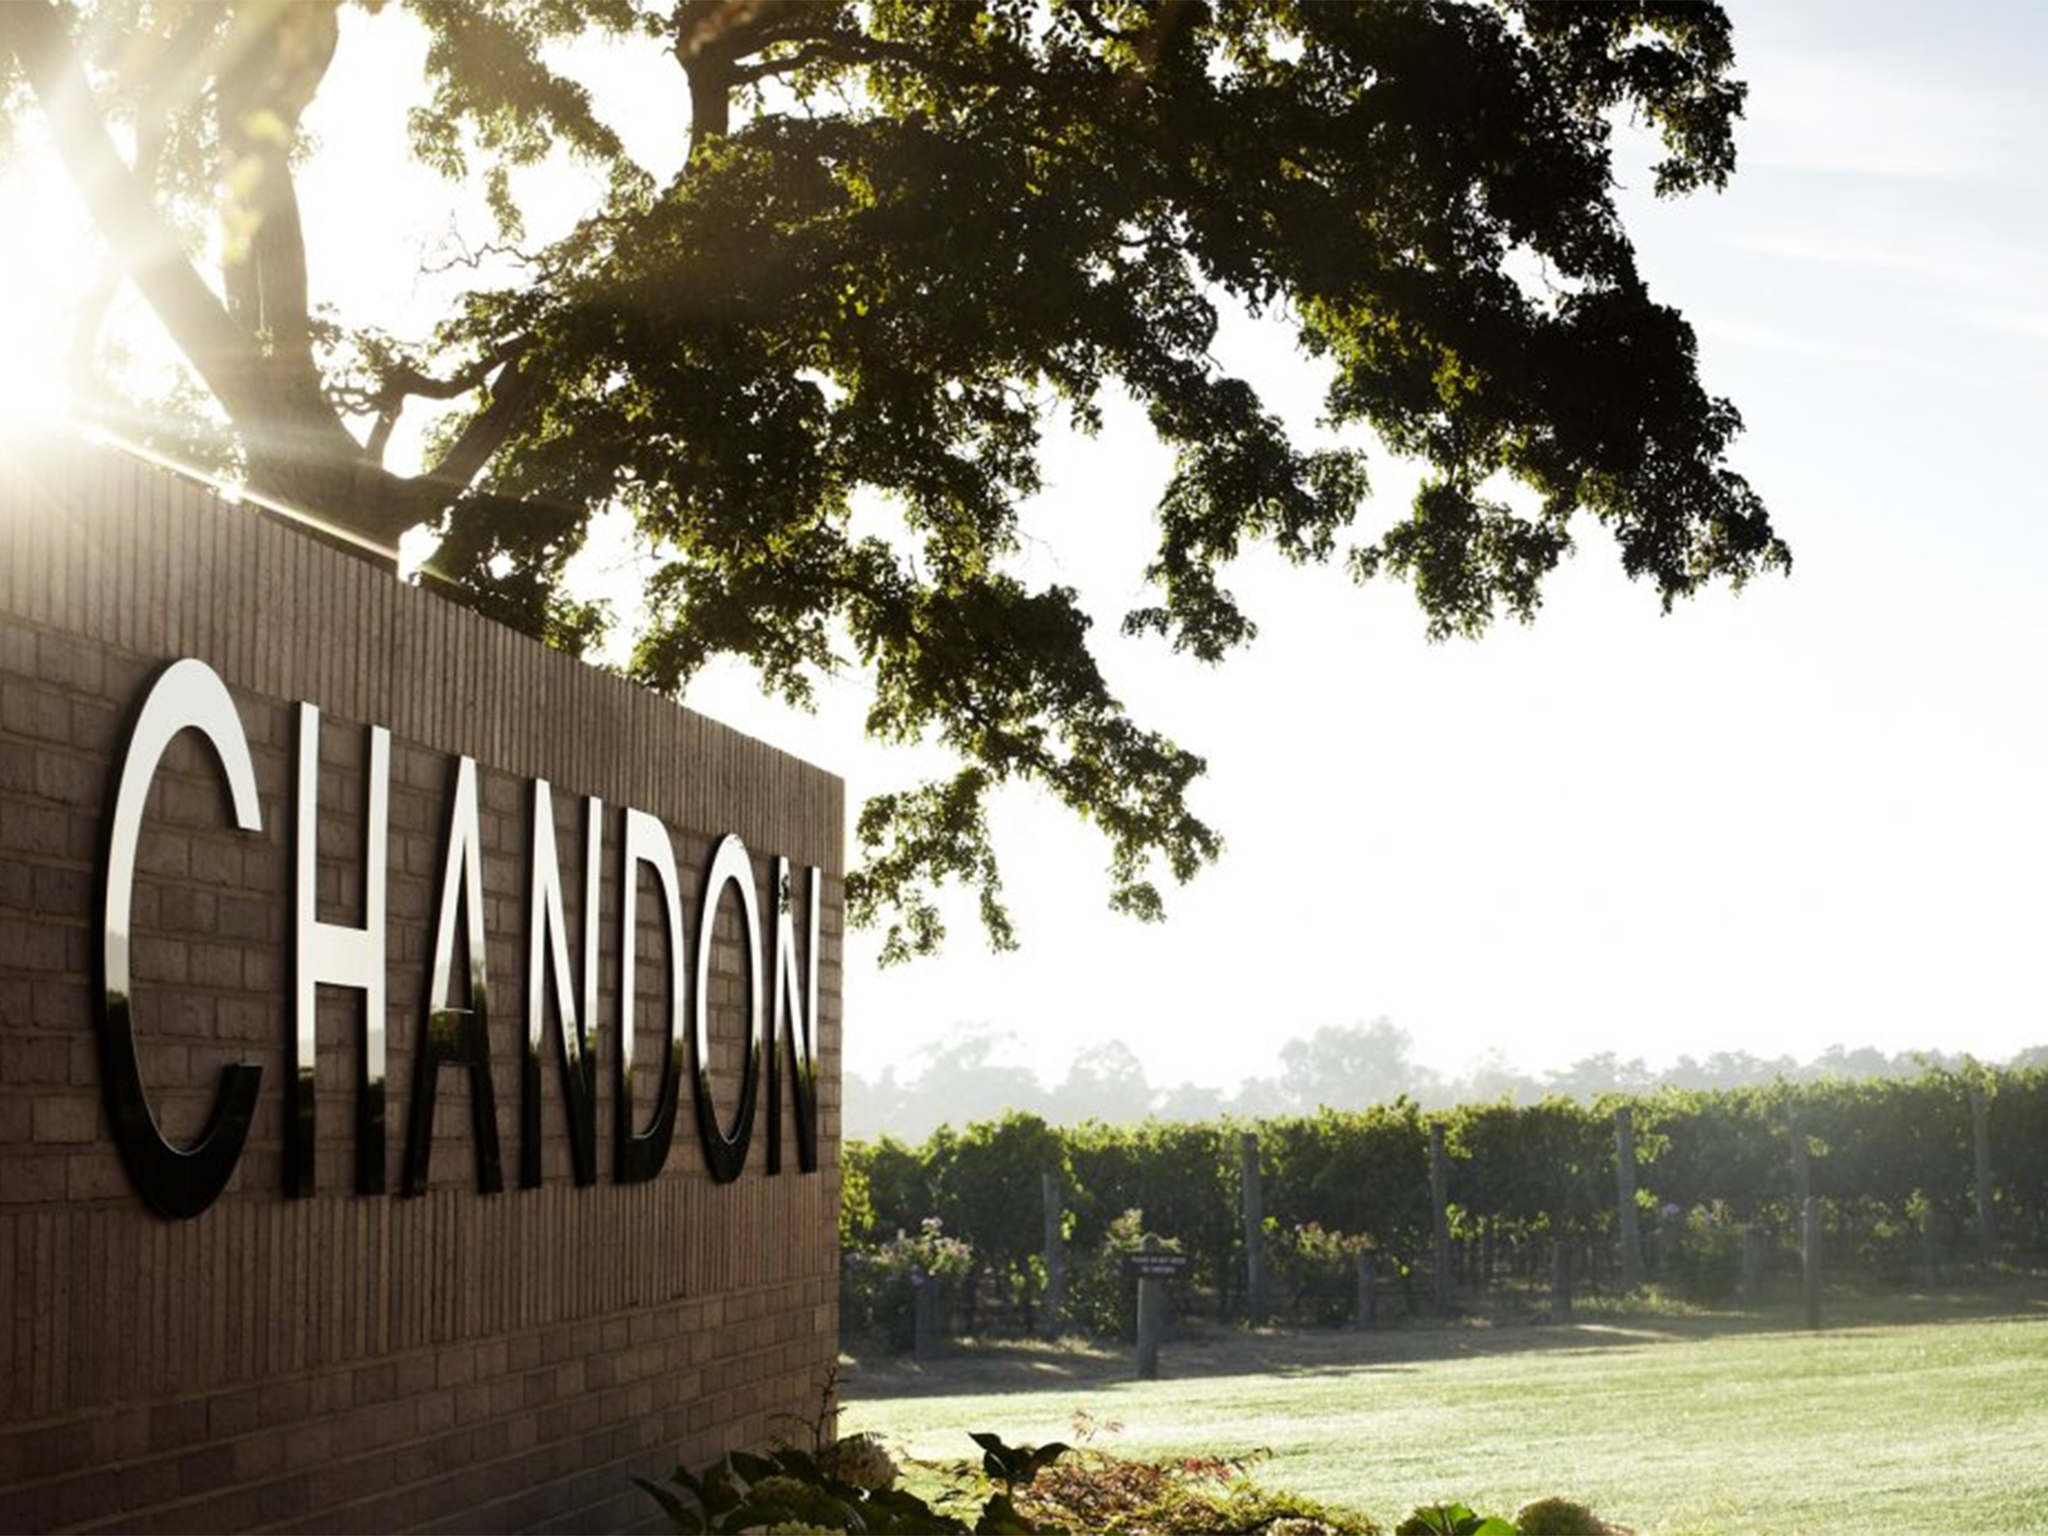 The entry sign to Chandon's vineyard